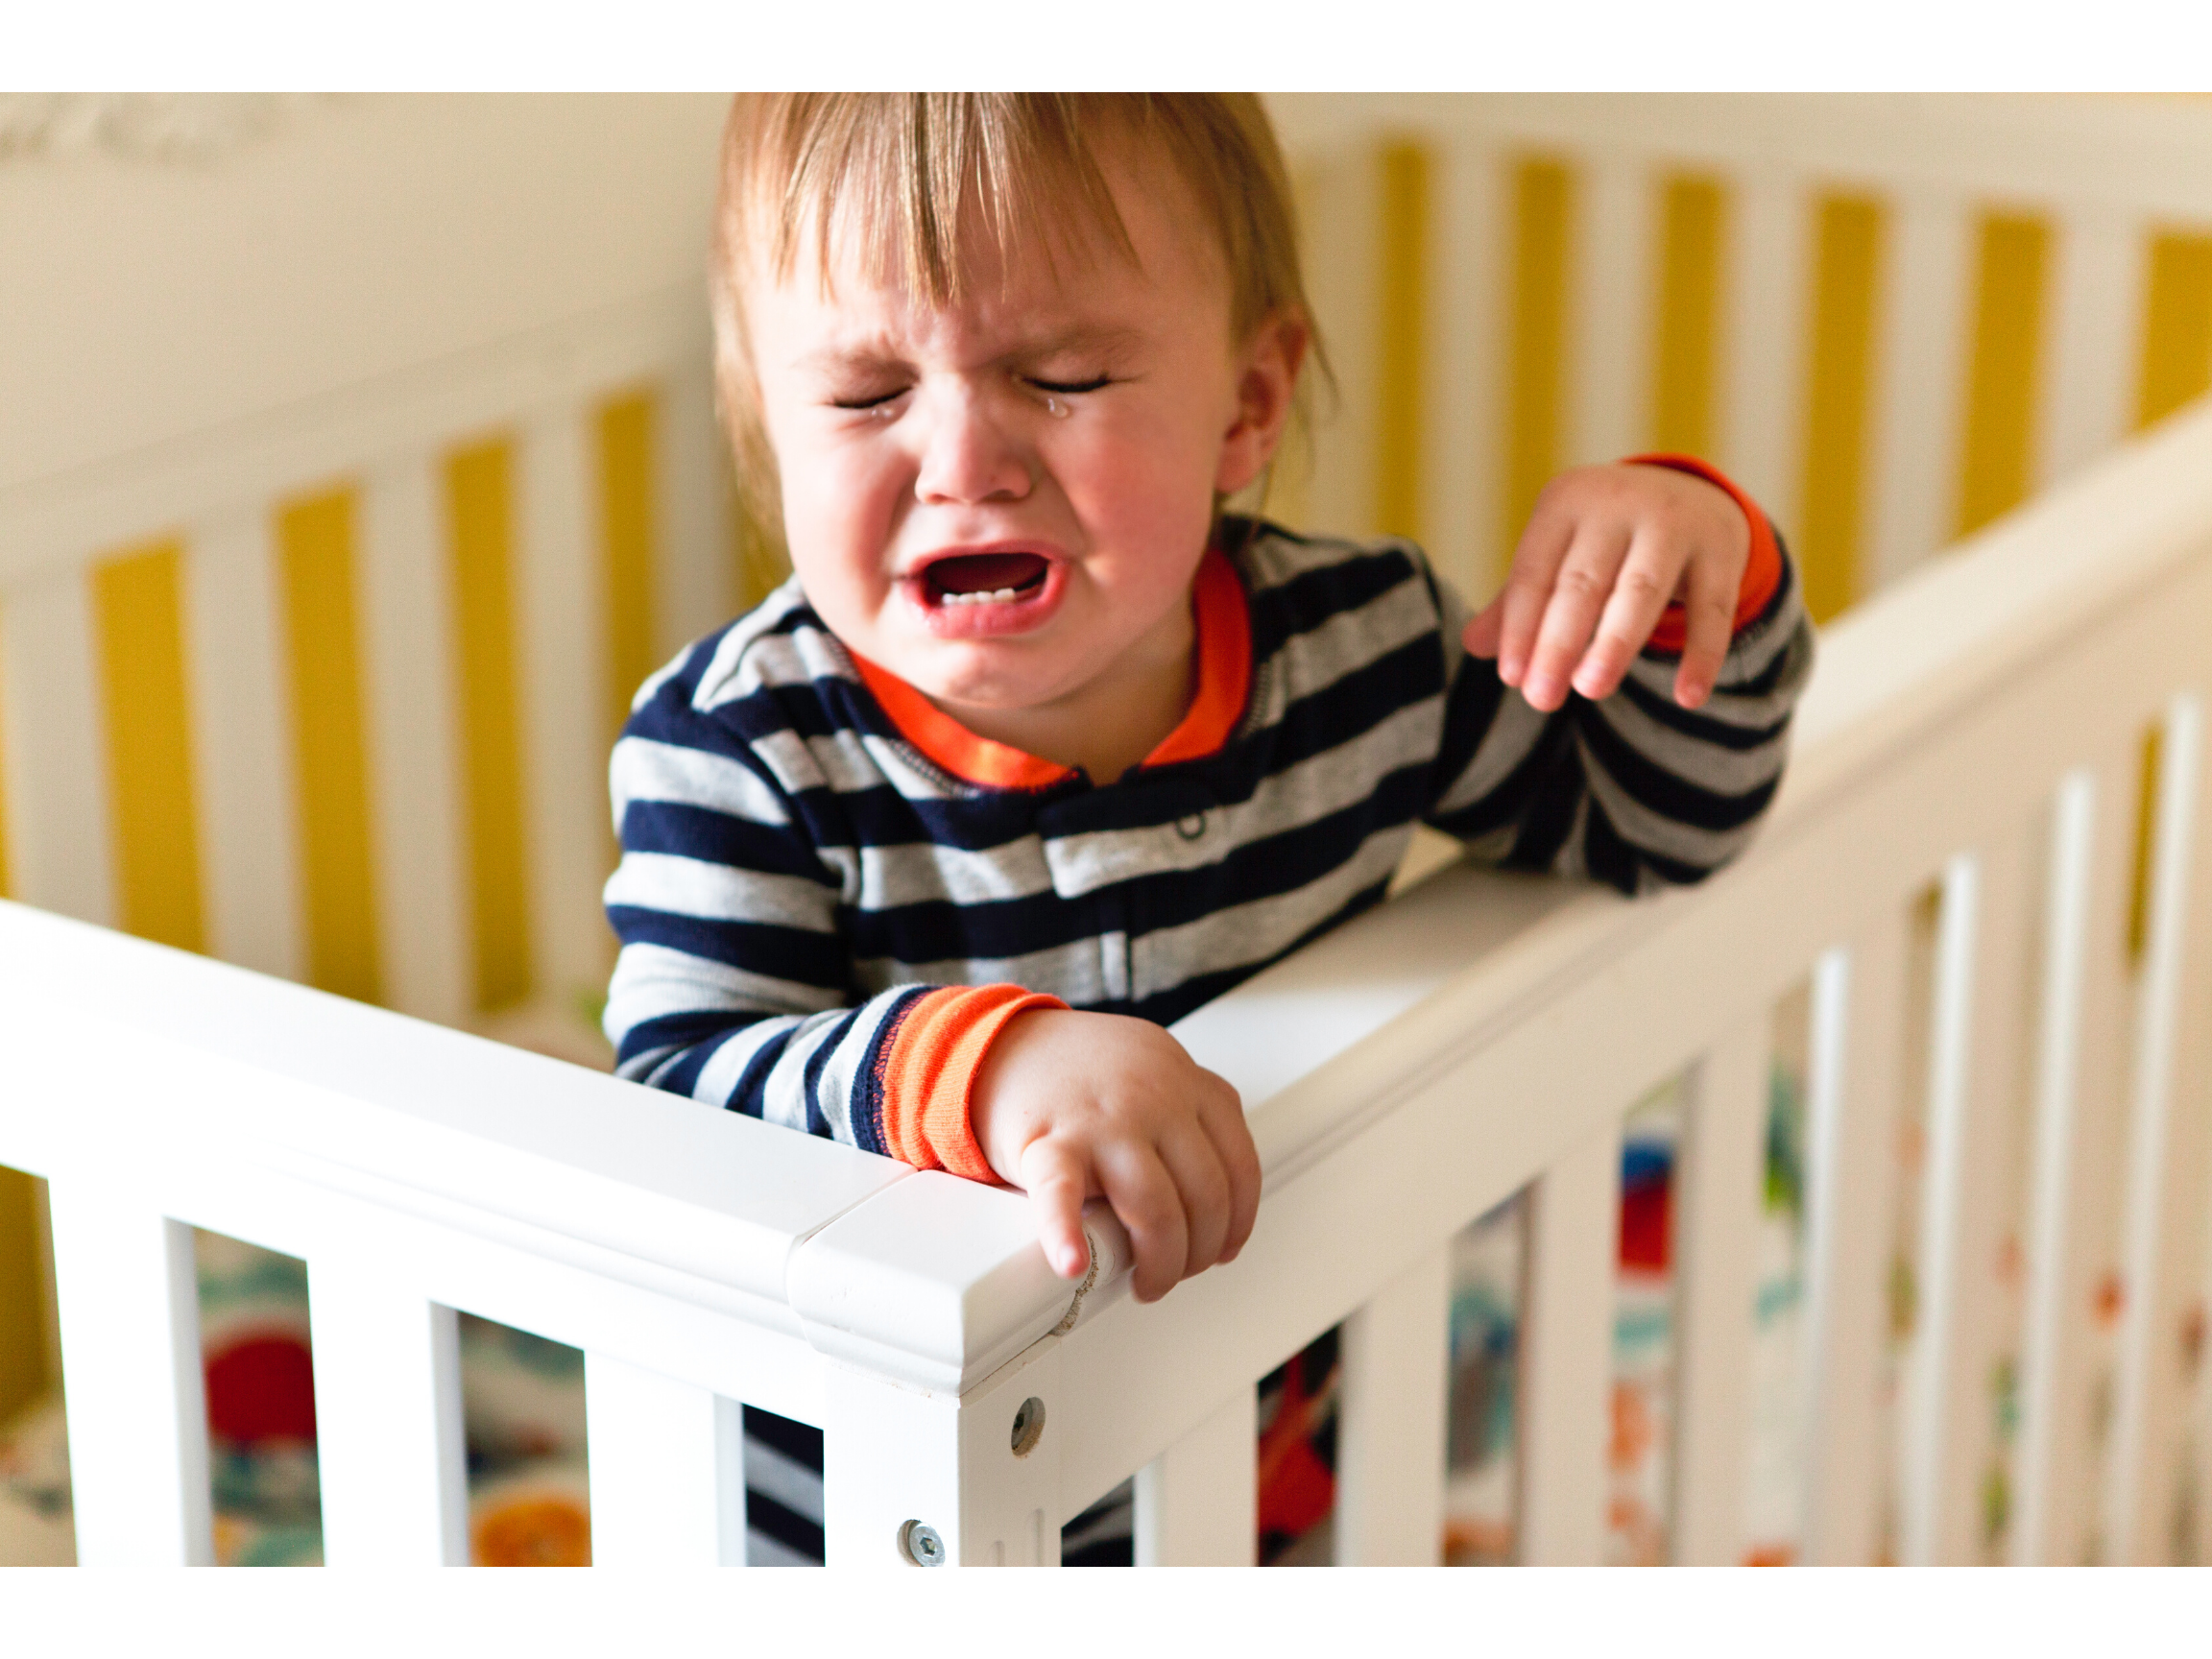 Toddler holding onto the edge of his cot, while throwing a tantrum